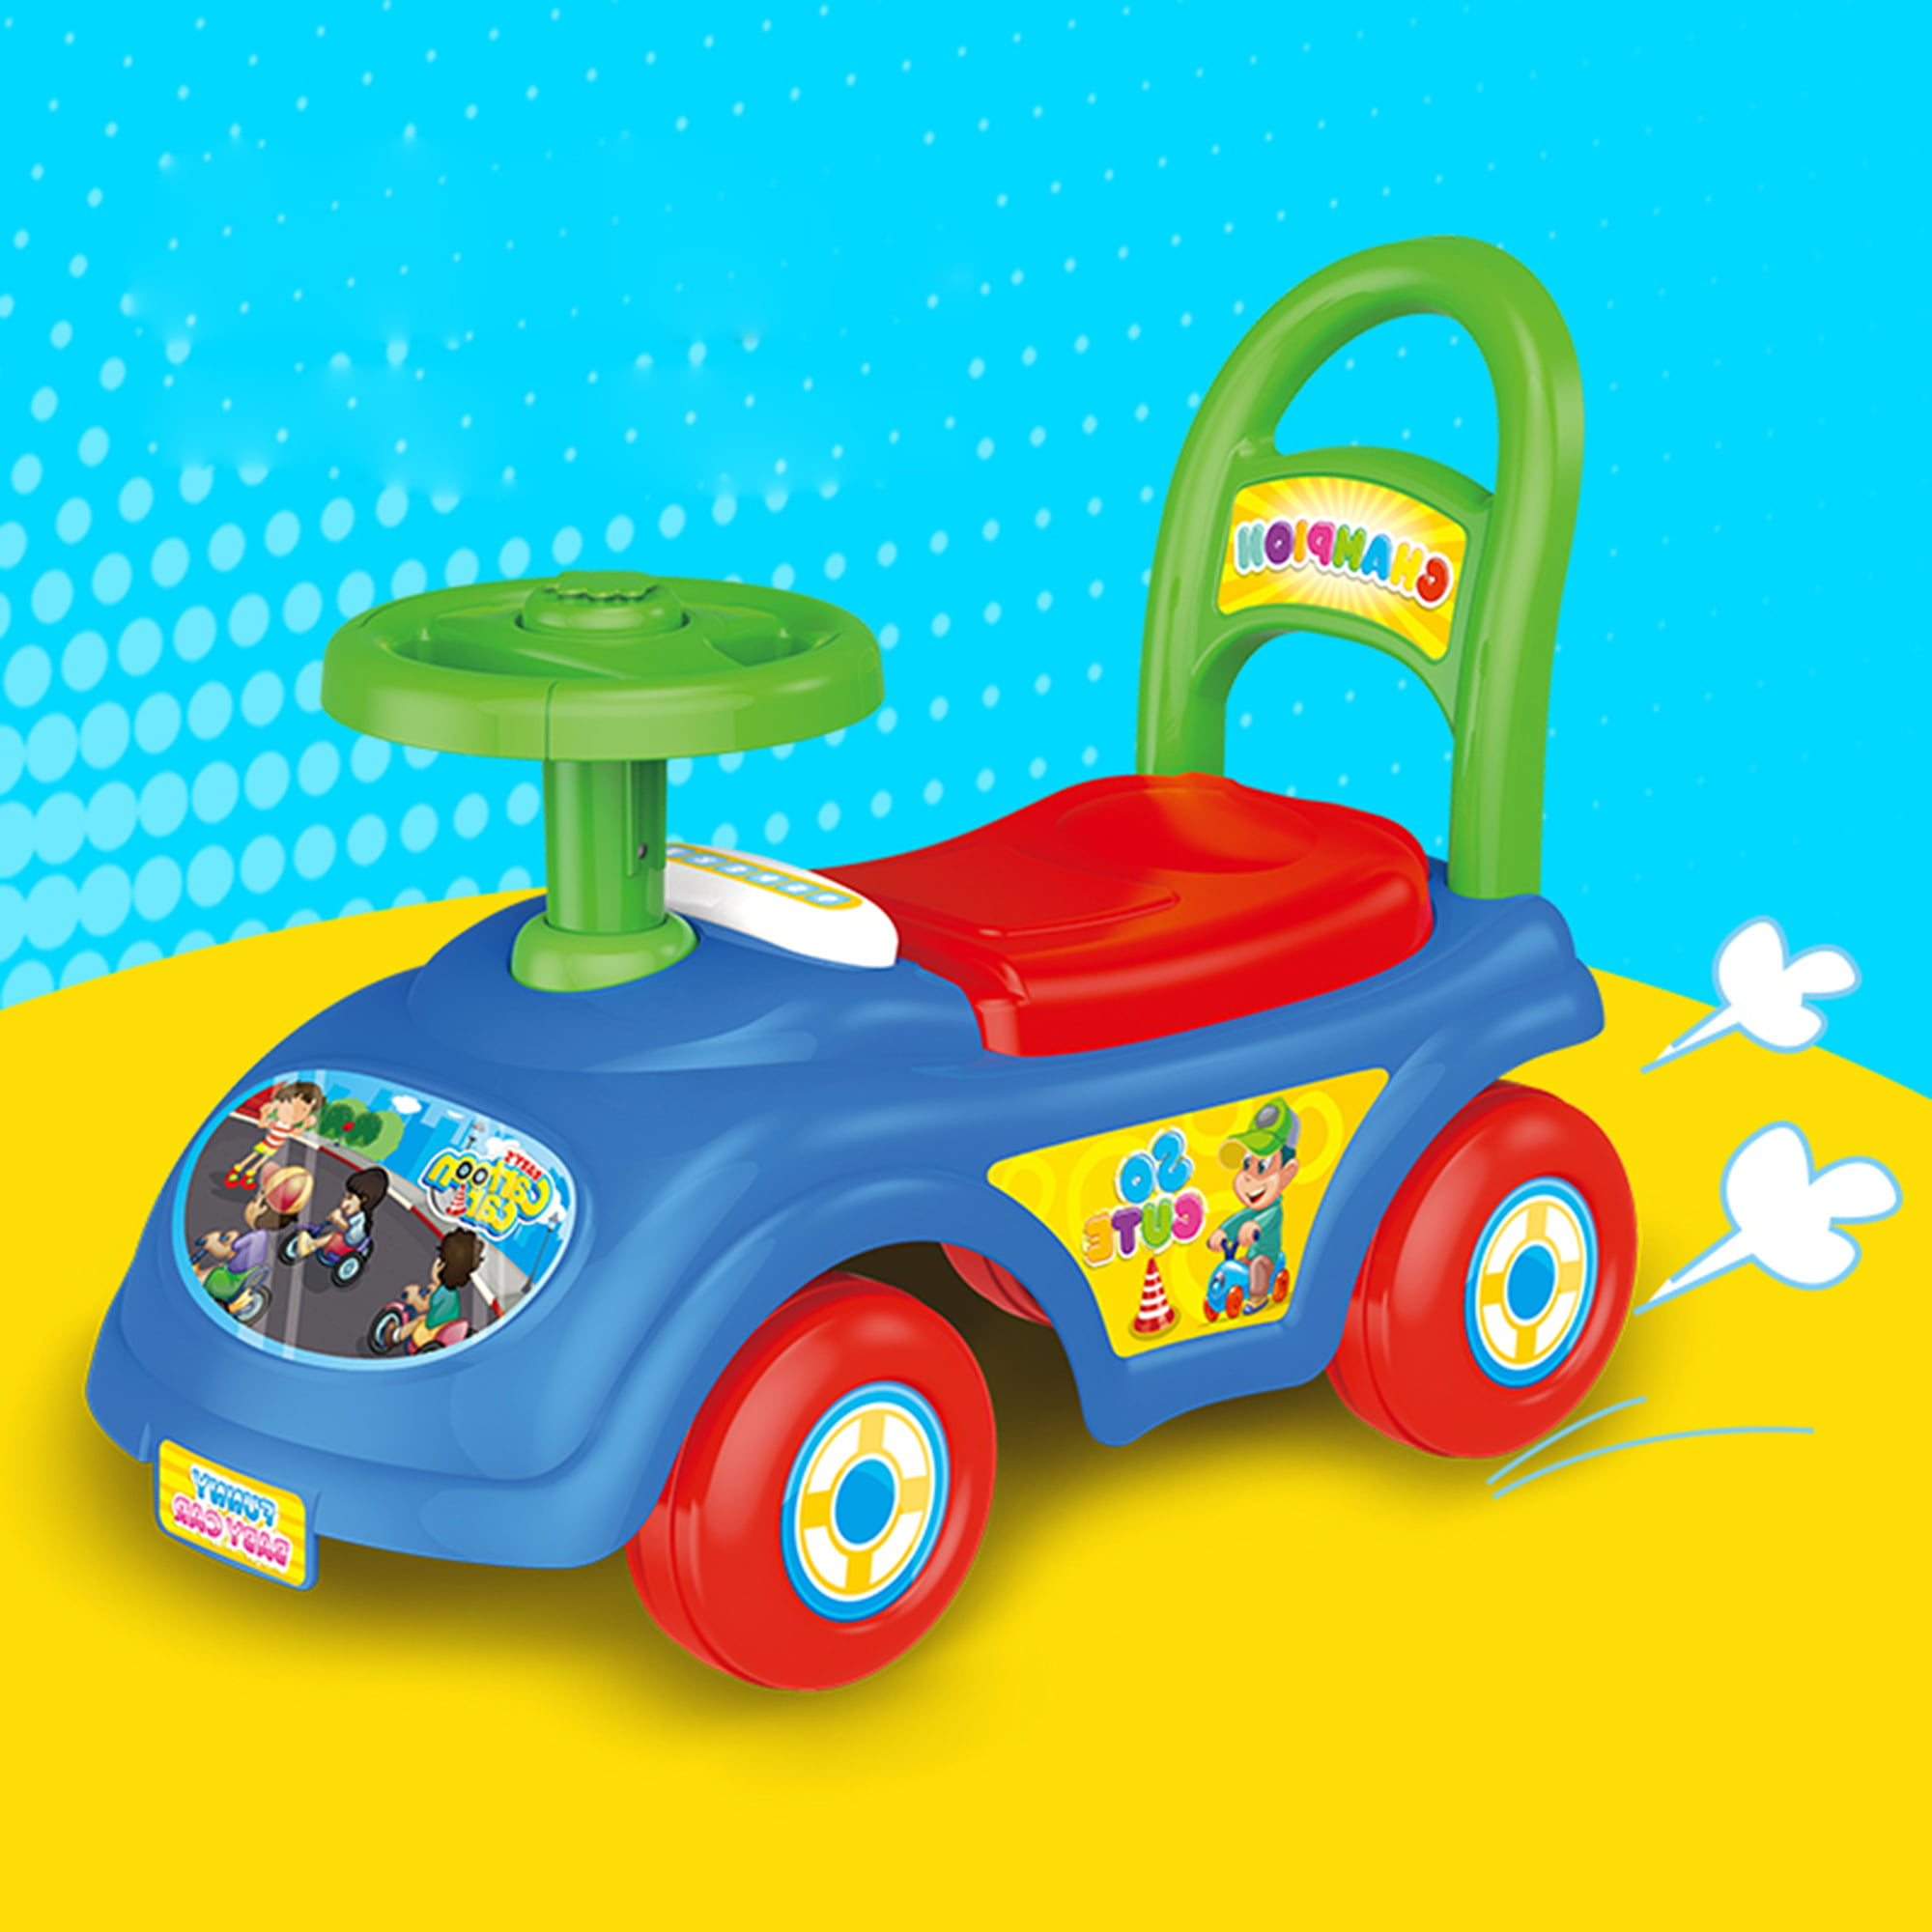 KARMAS PRODUCT Baby Ride On Toys Push Cars for Toddlers by KARMAS PRODUCT